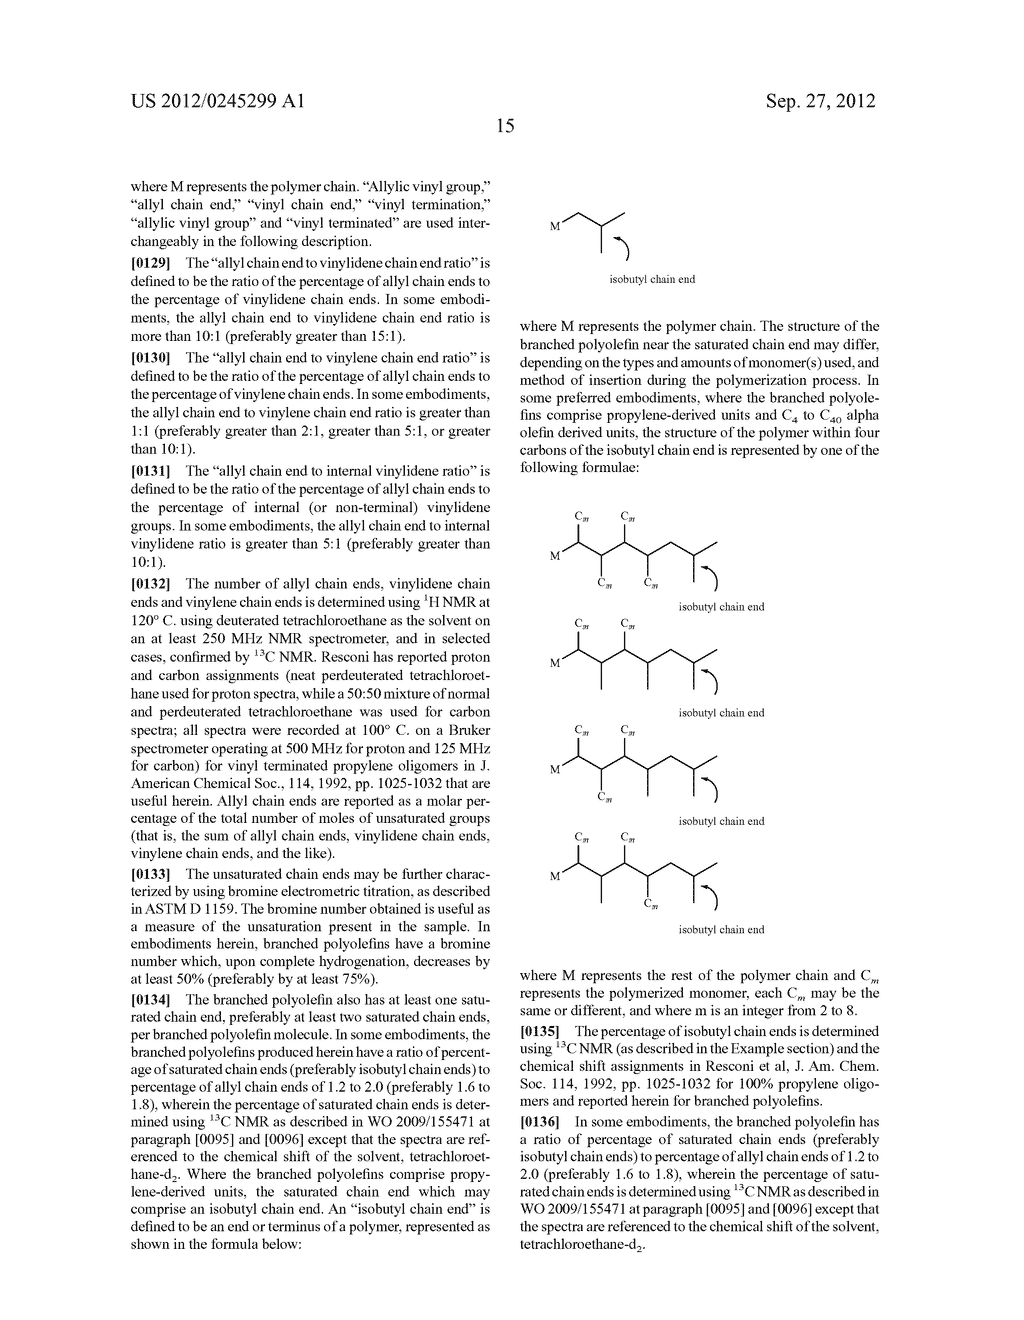 Branched Vinyl Terminated Polymers And Methods For Production Thereof - diagram, schematic, and image 17